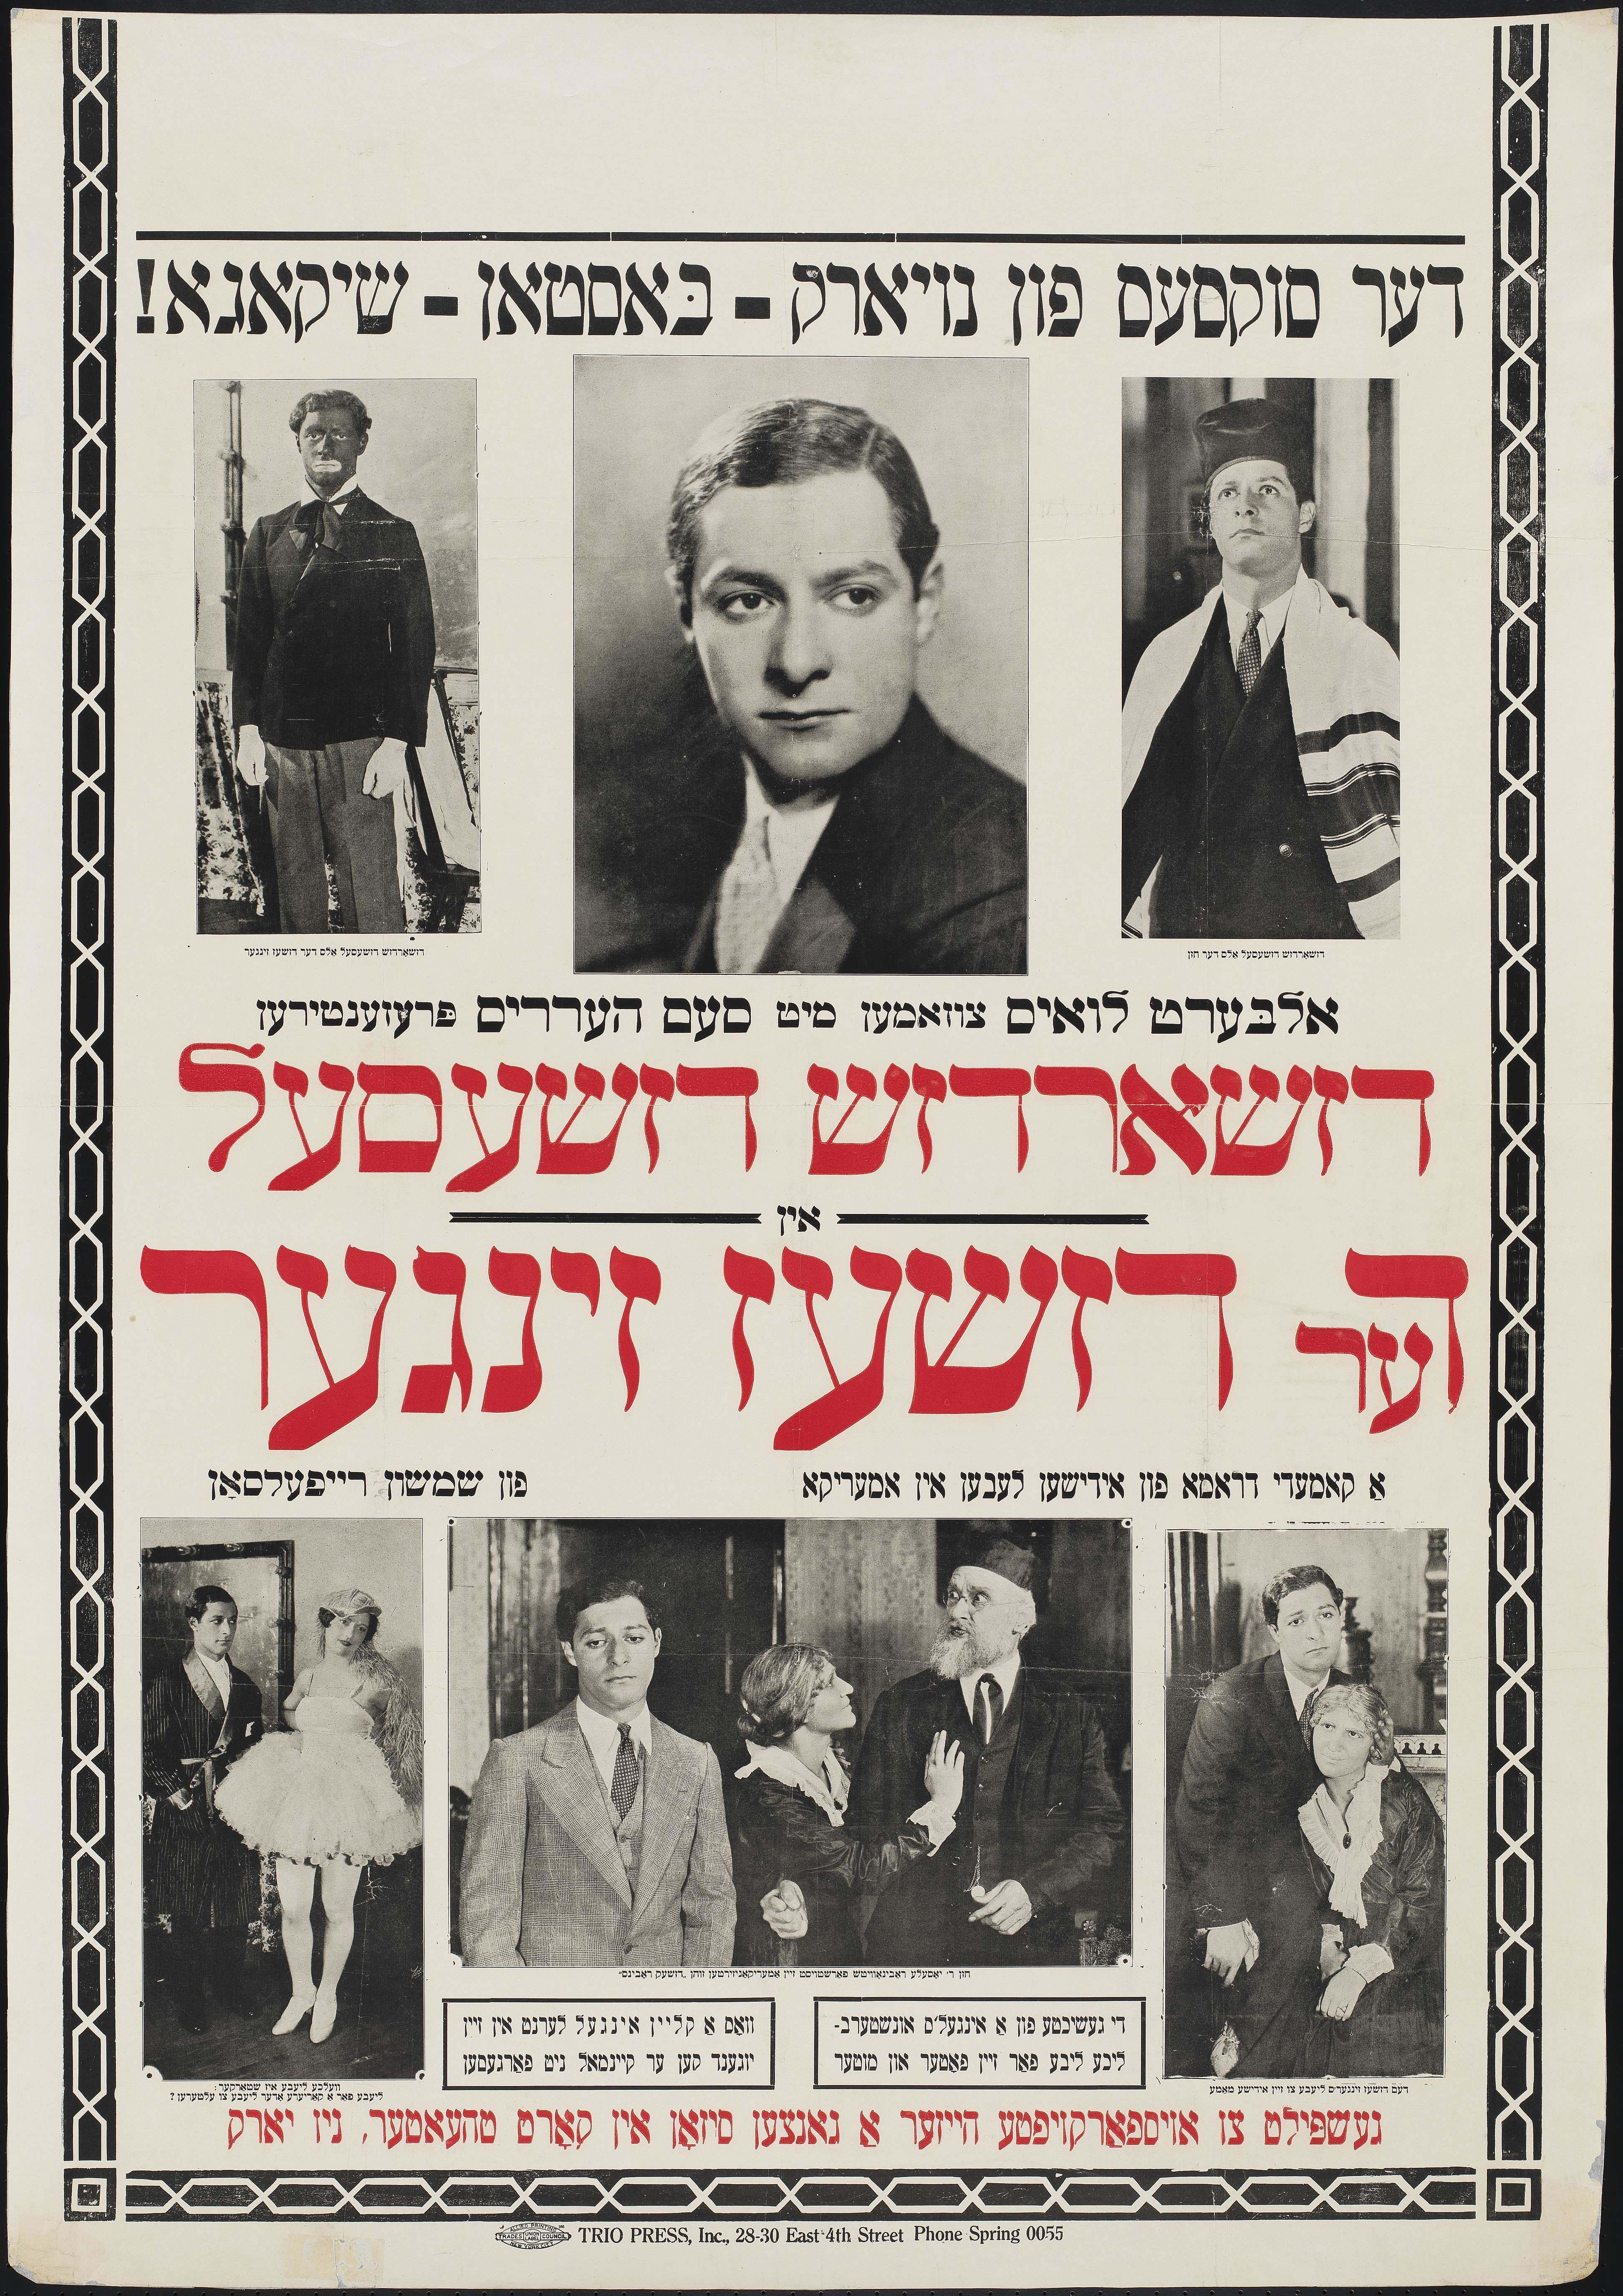 <p><i>The Jazz Singer </i>at the Cort Theatre poster, c. 1925. Museum of the City of New York, Gift of the Hebrew Actors Union, 66.33.5</p>